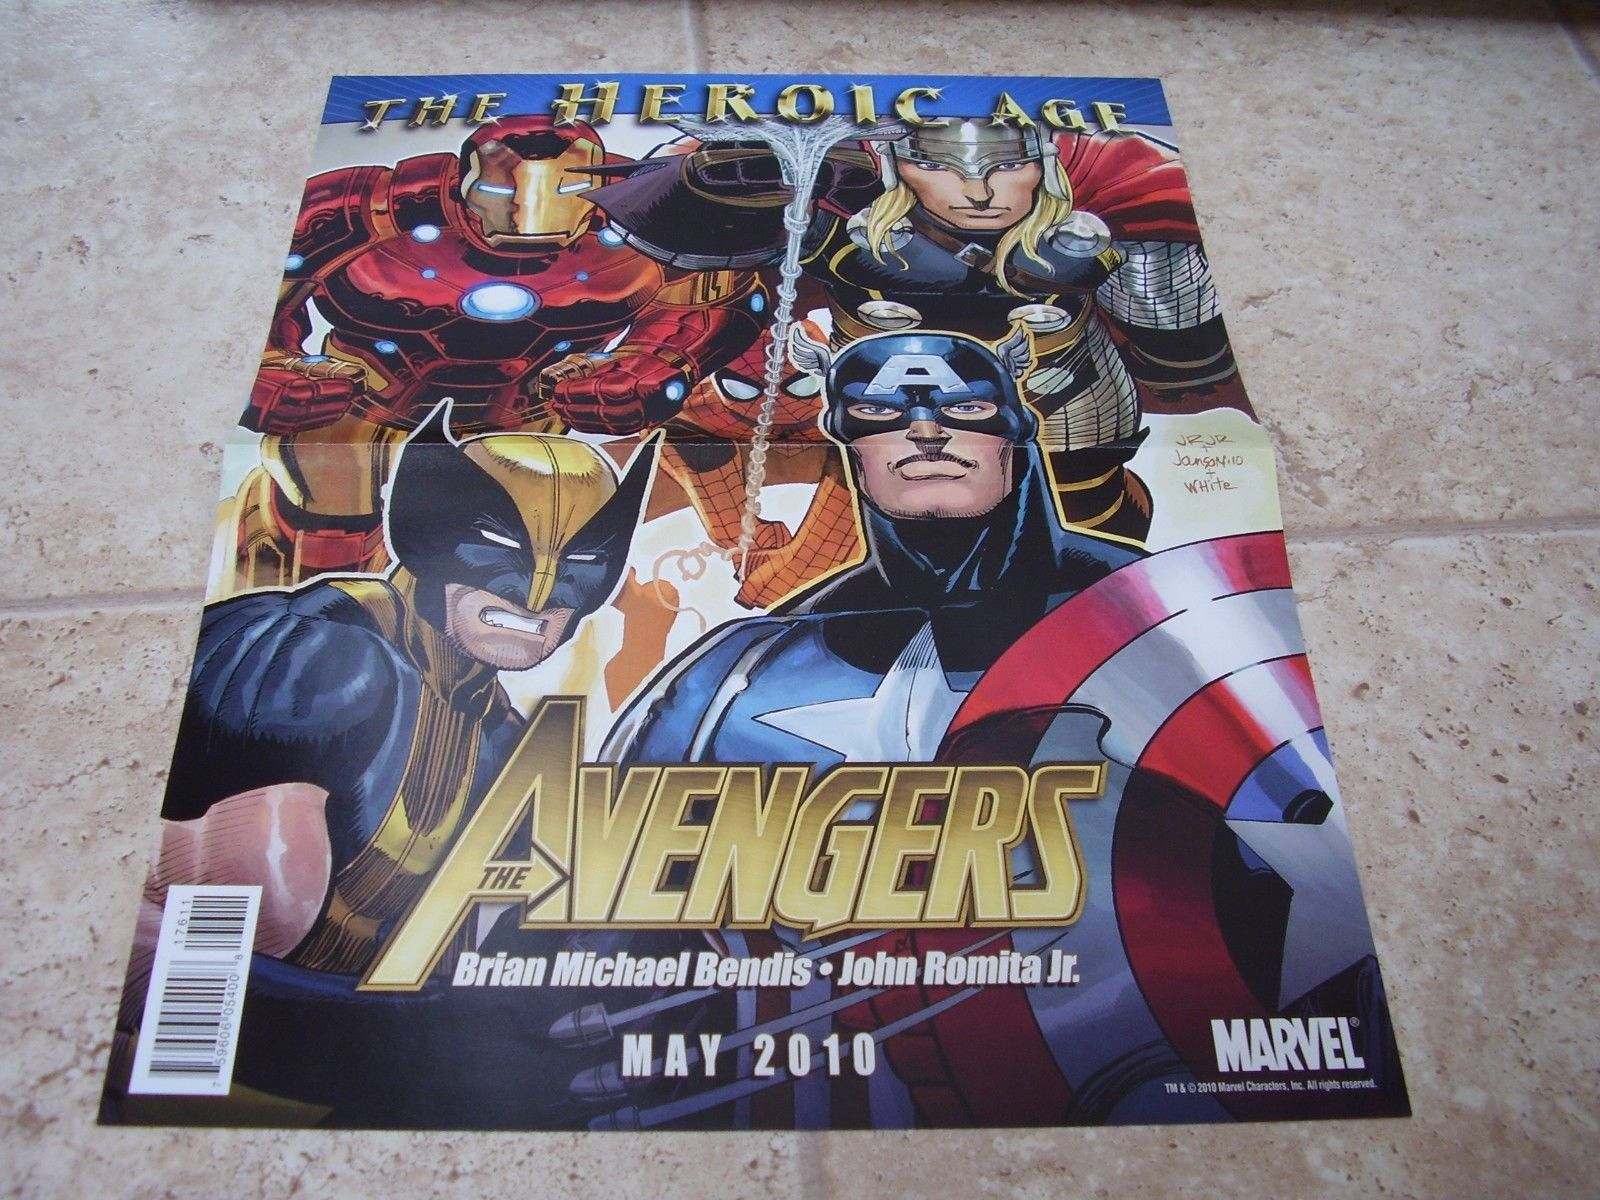 Primary image for Avengers and Secret Avengers Heroic Age folded promo poster Mike Deodato